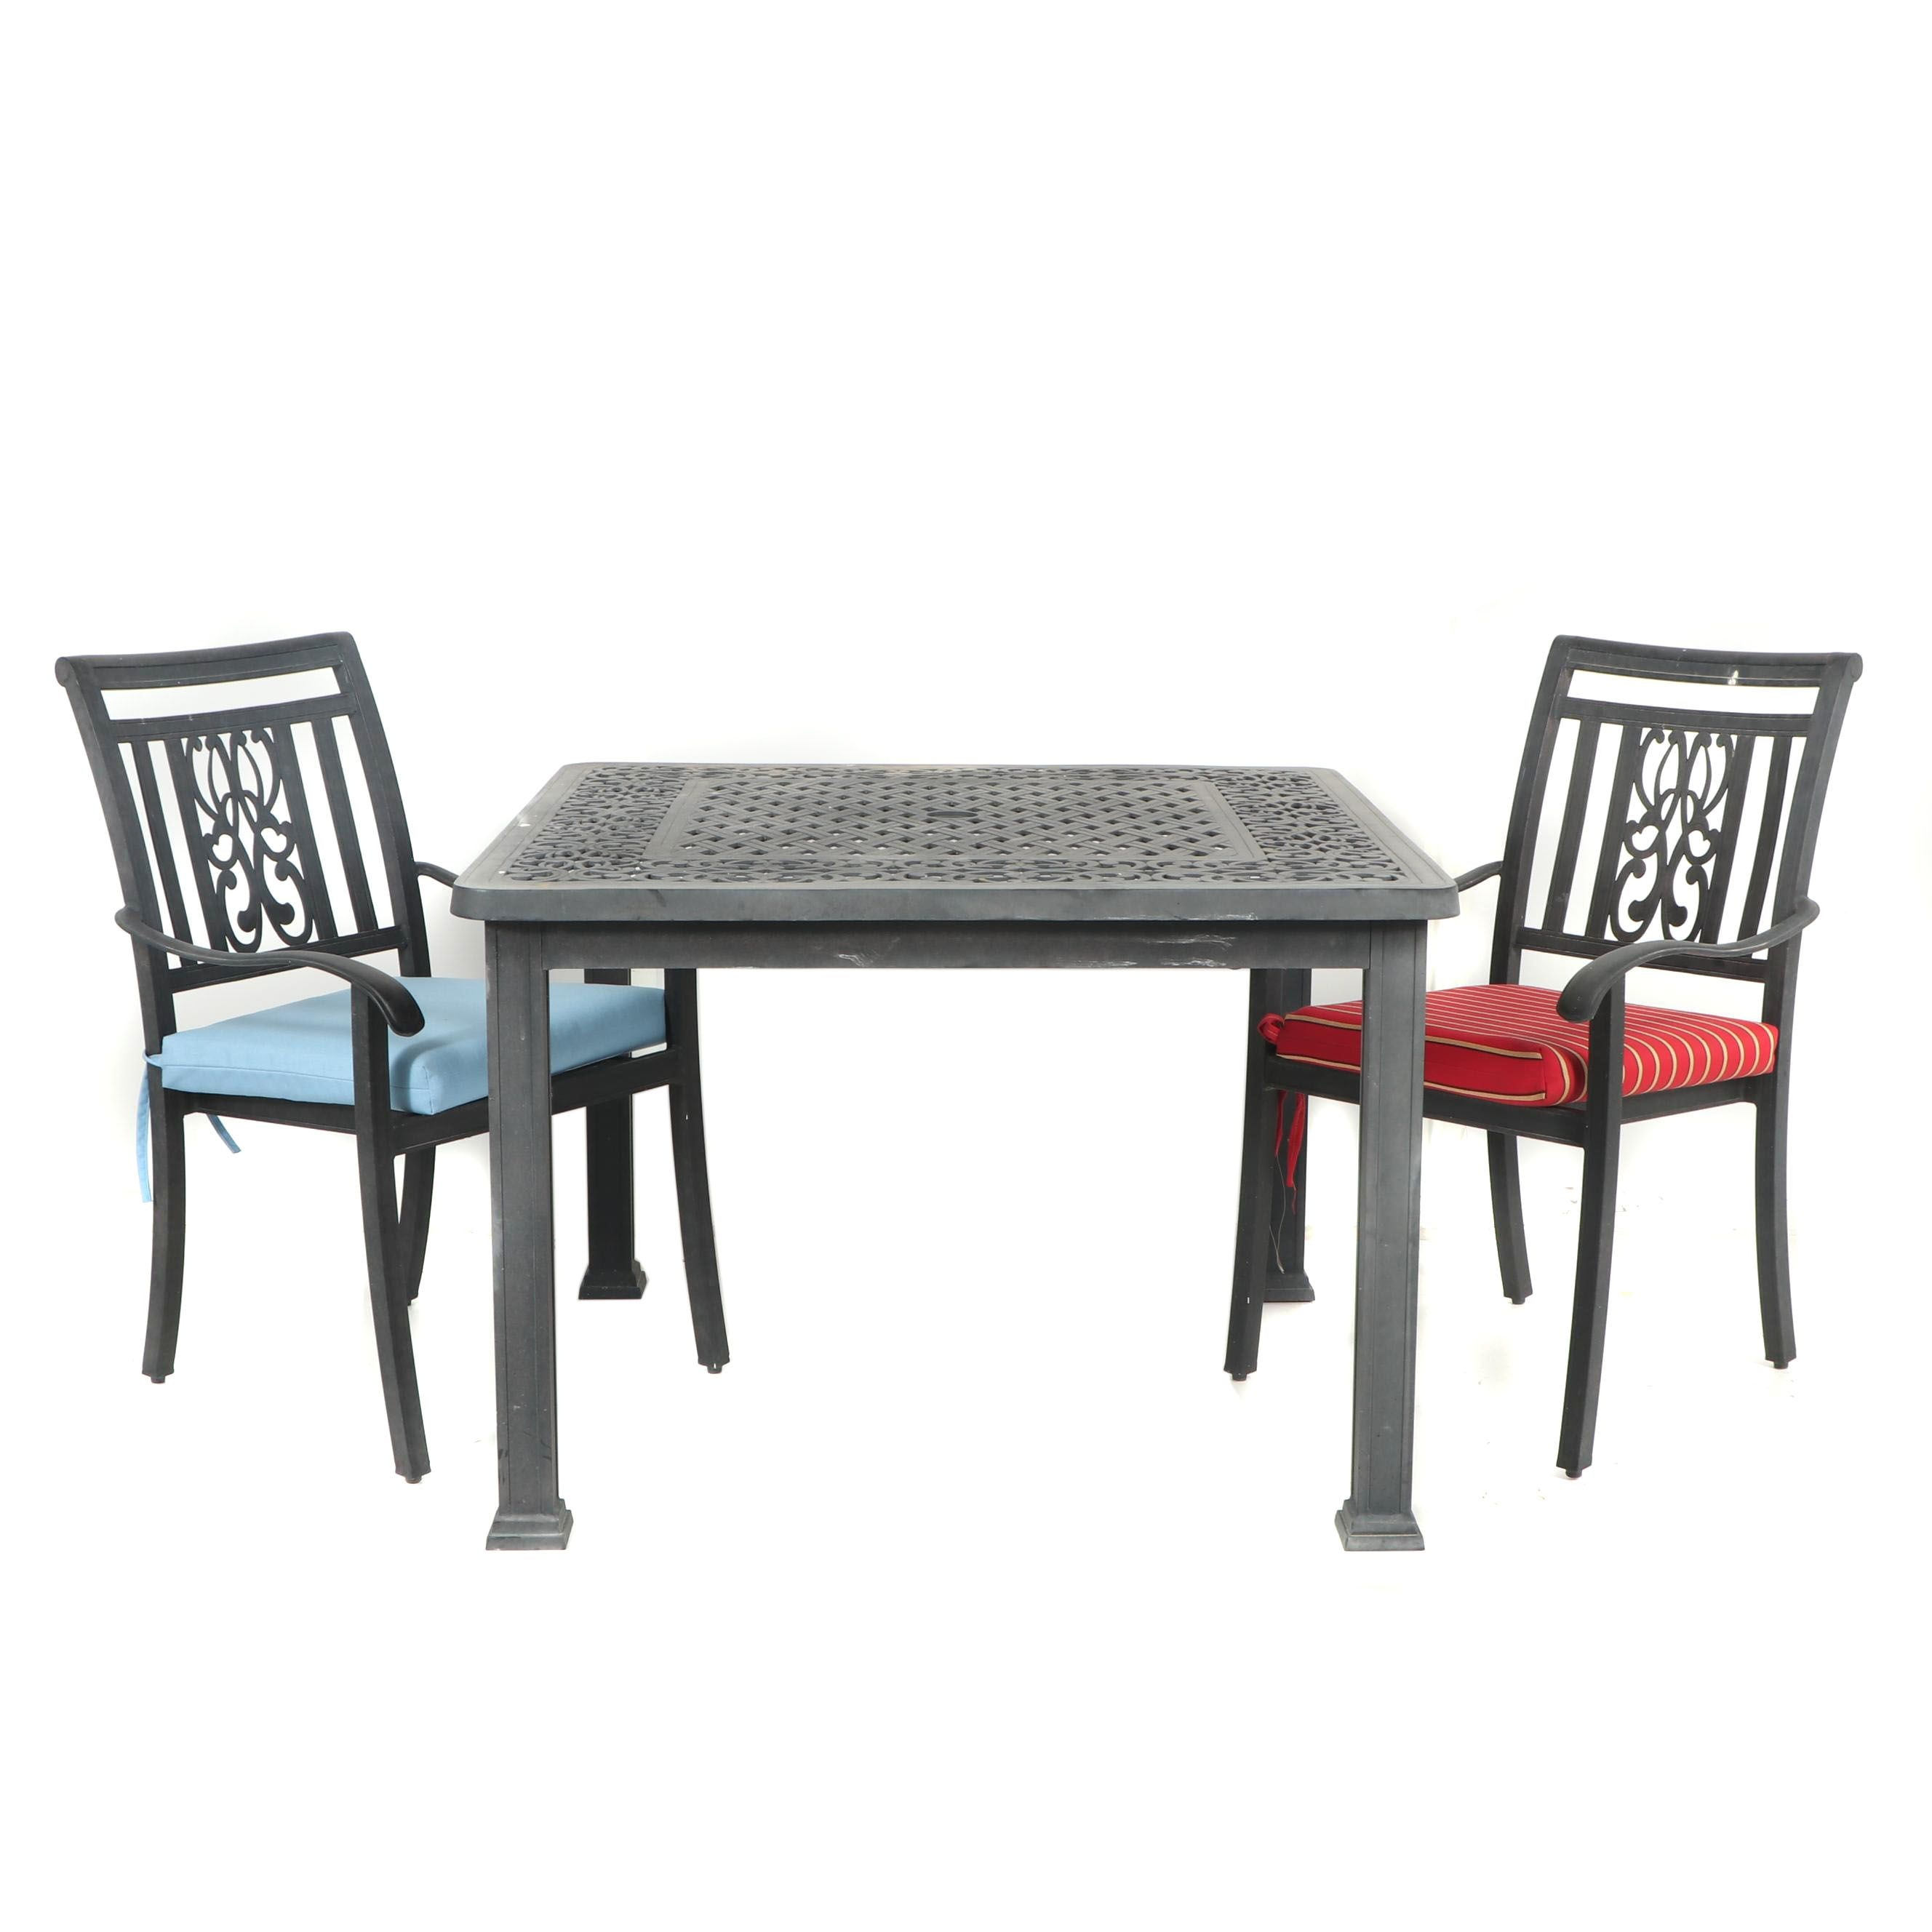 Metal Patio Table with Armchairs, 21st Century